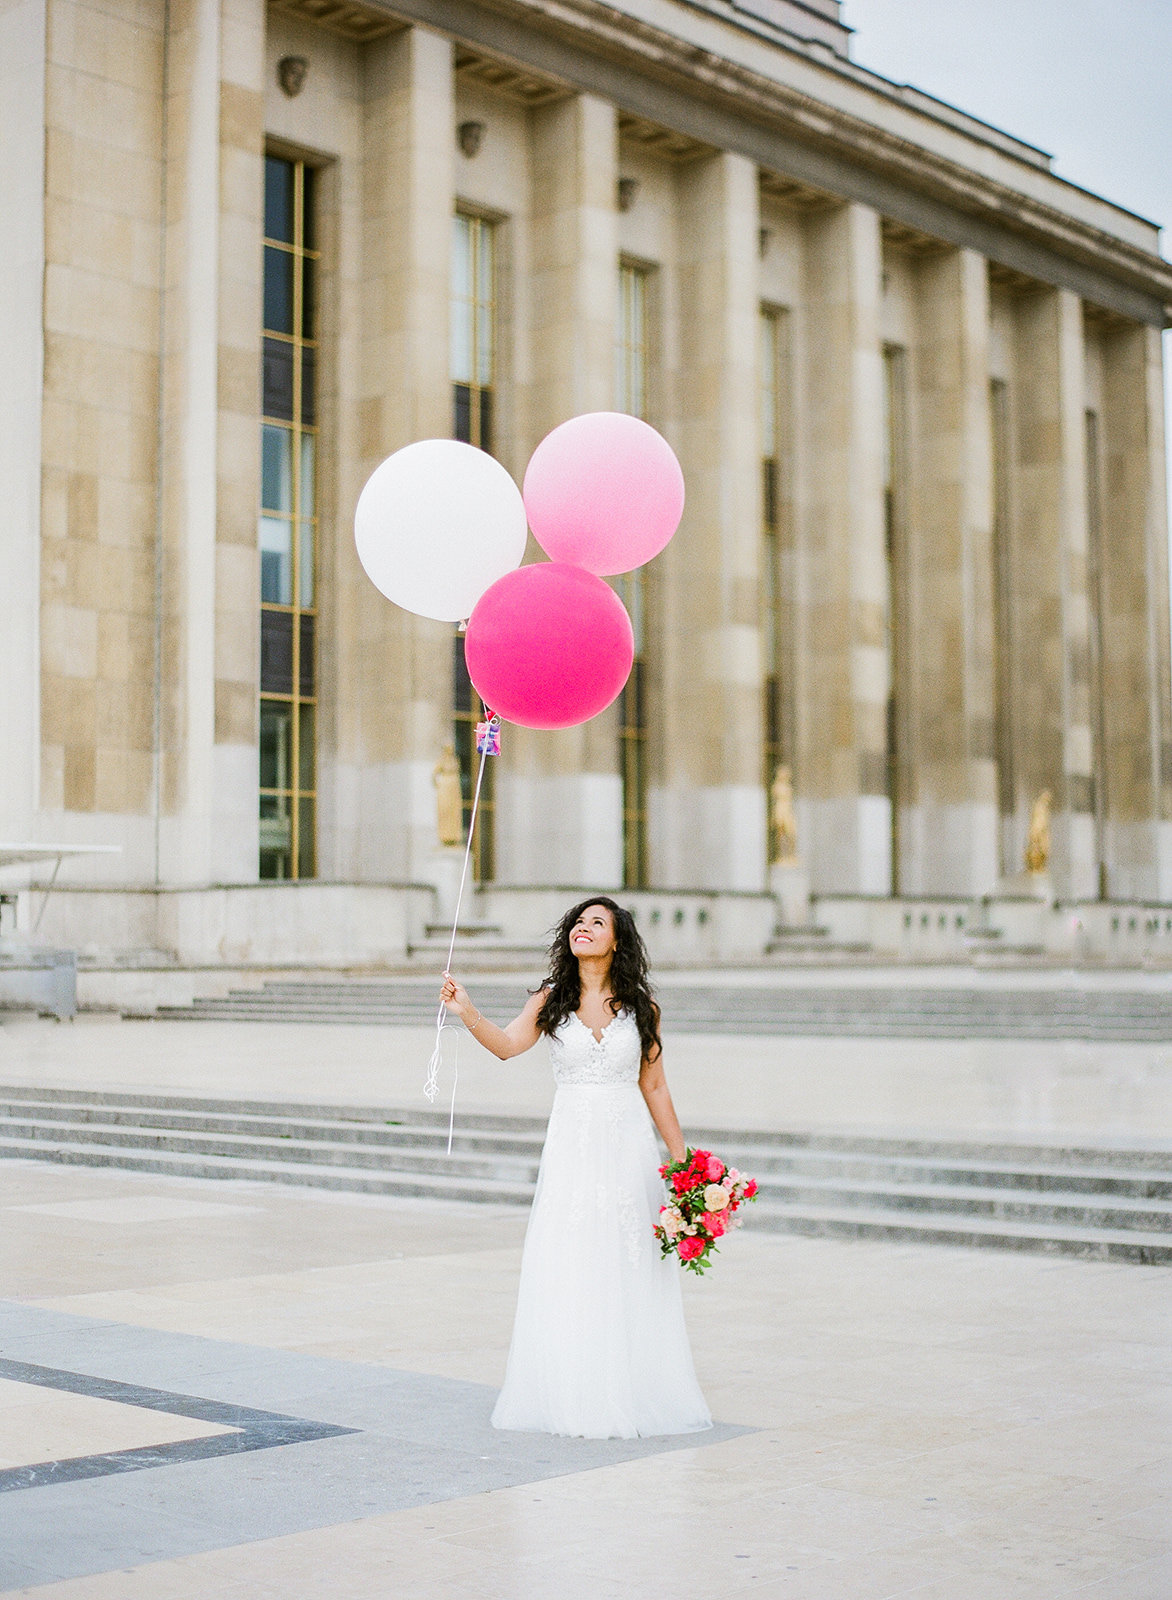 Laure_Lalliard_Design_Trocadero_Janine_Licare_Photography-1